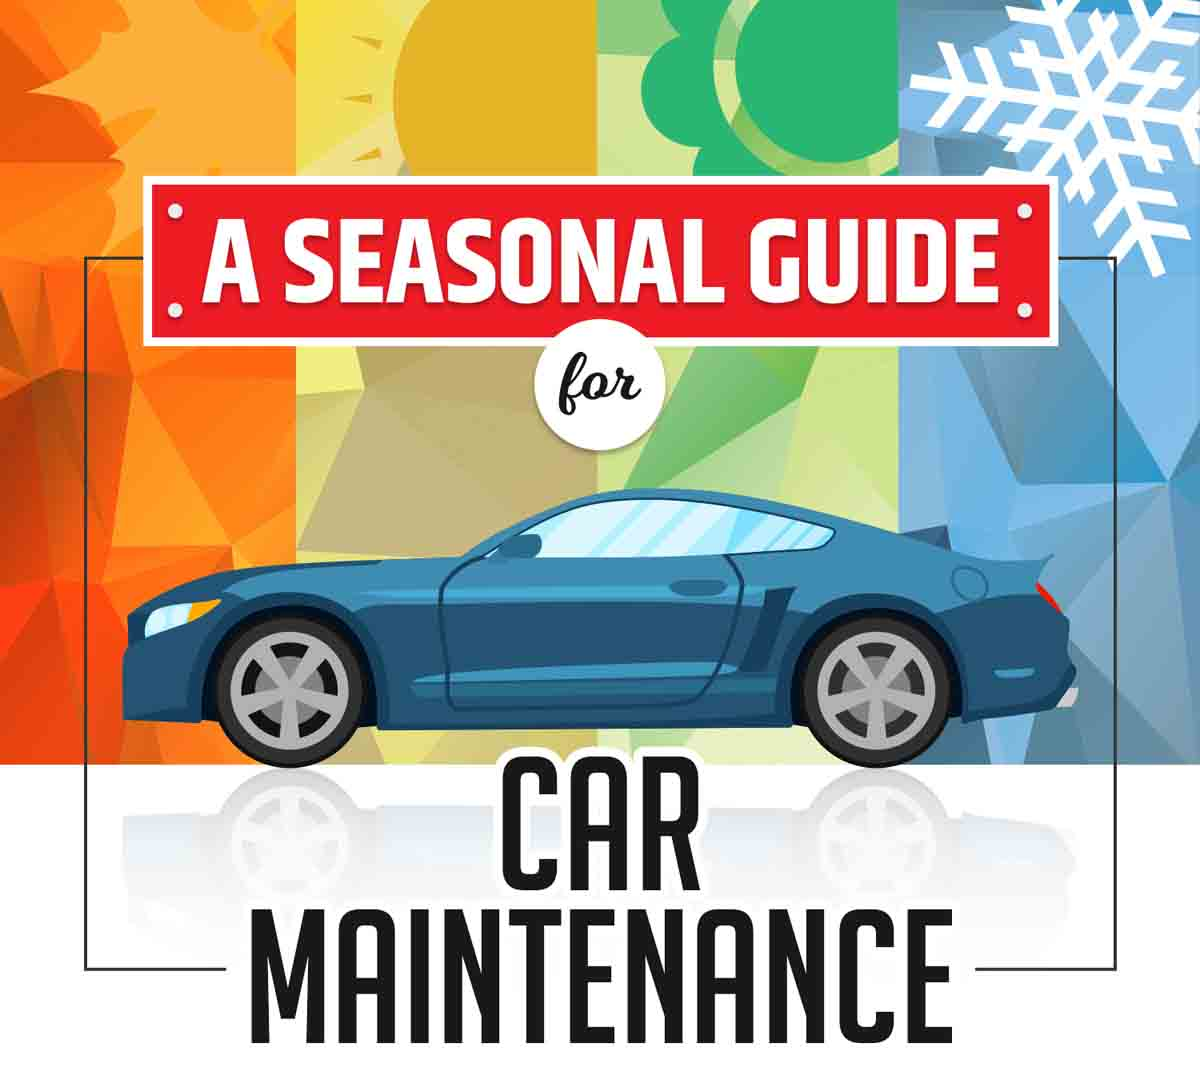 Seasonal Guide for Car Maintenance